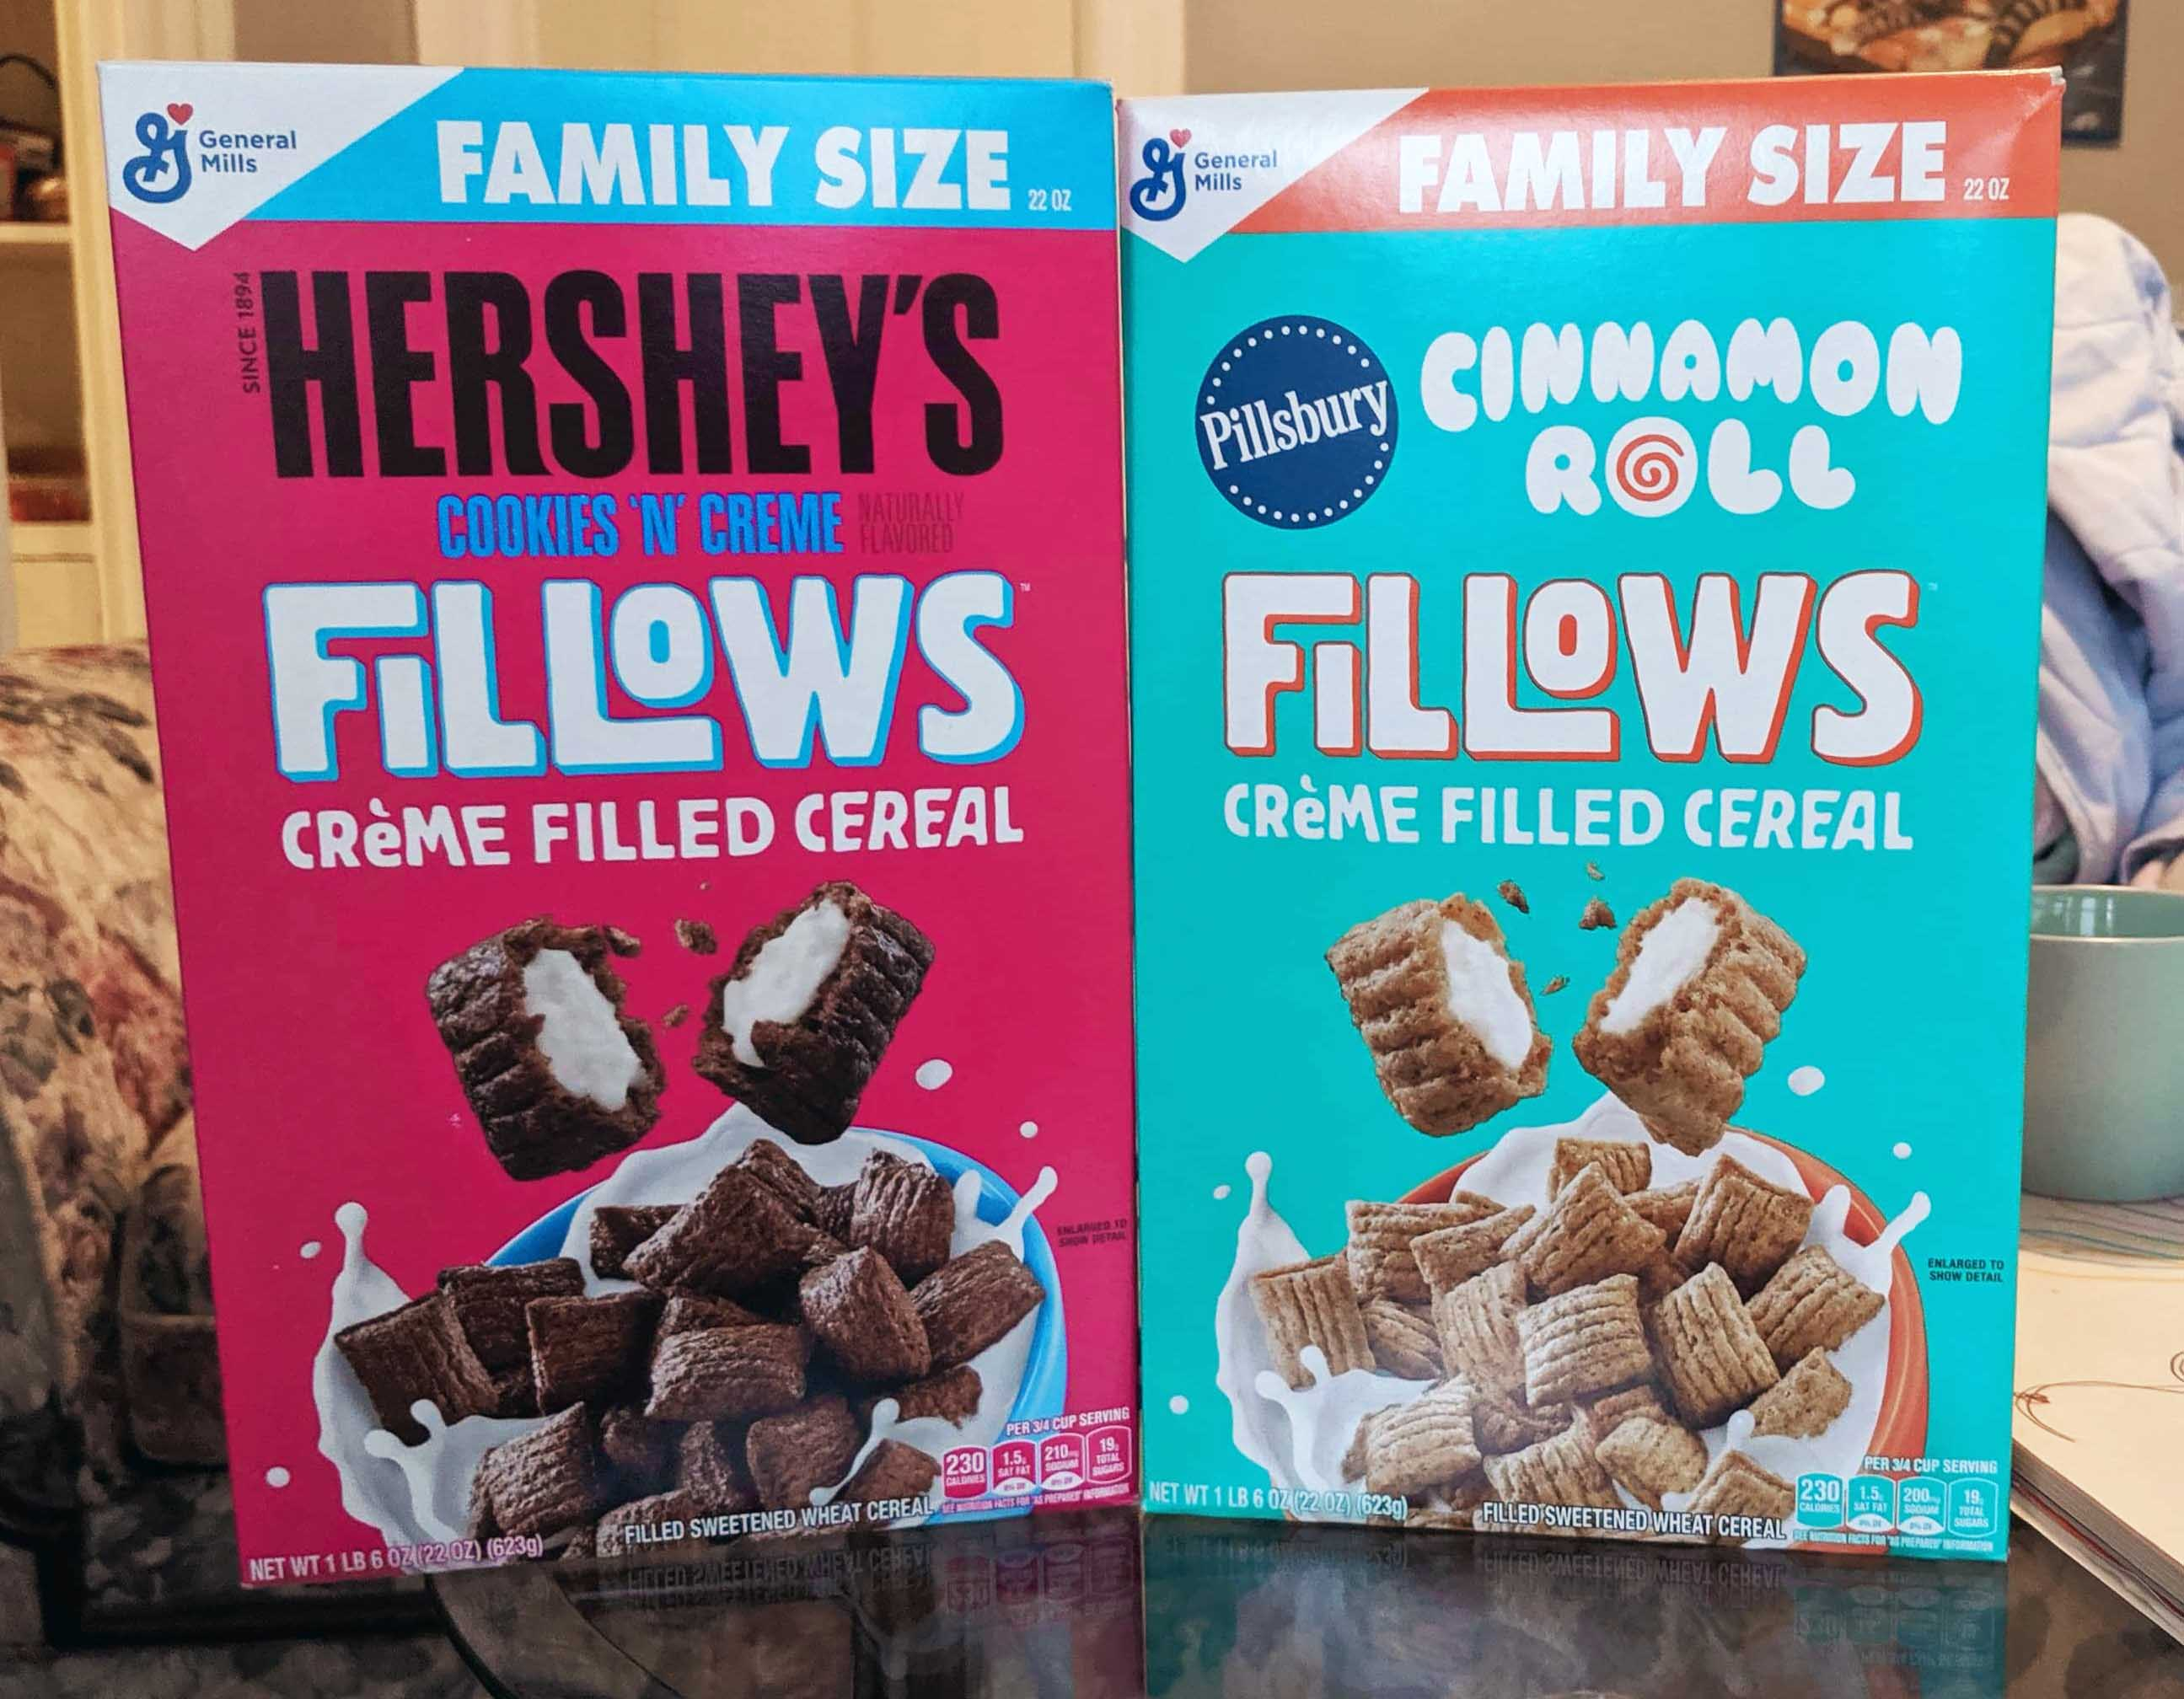 New Fillows Cereal Review Hershey S Cookies N Creme